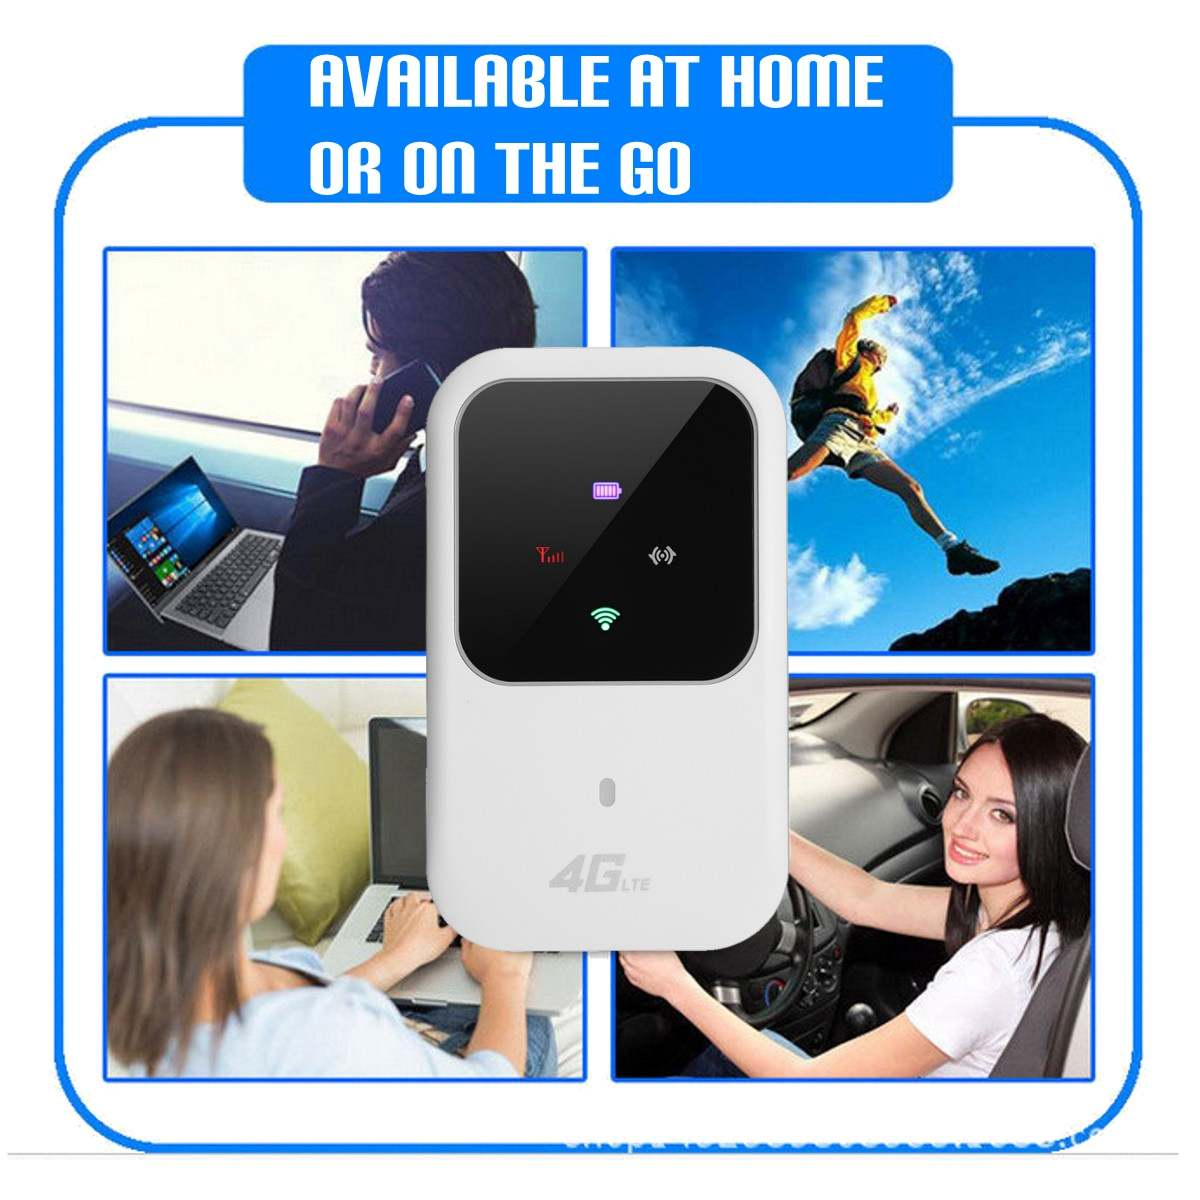 Фото 4G LTE Mobile WiFi Wireless Router Hotspot LED Lights Supports 10 Users Portable Router Modem for Car Home Mobile Travel Camping